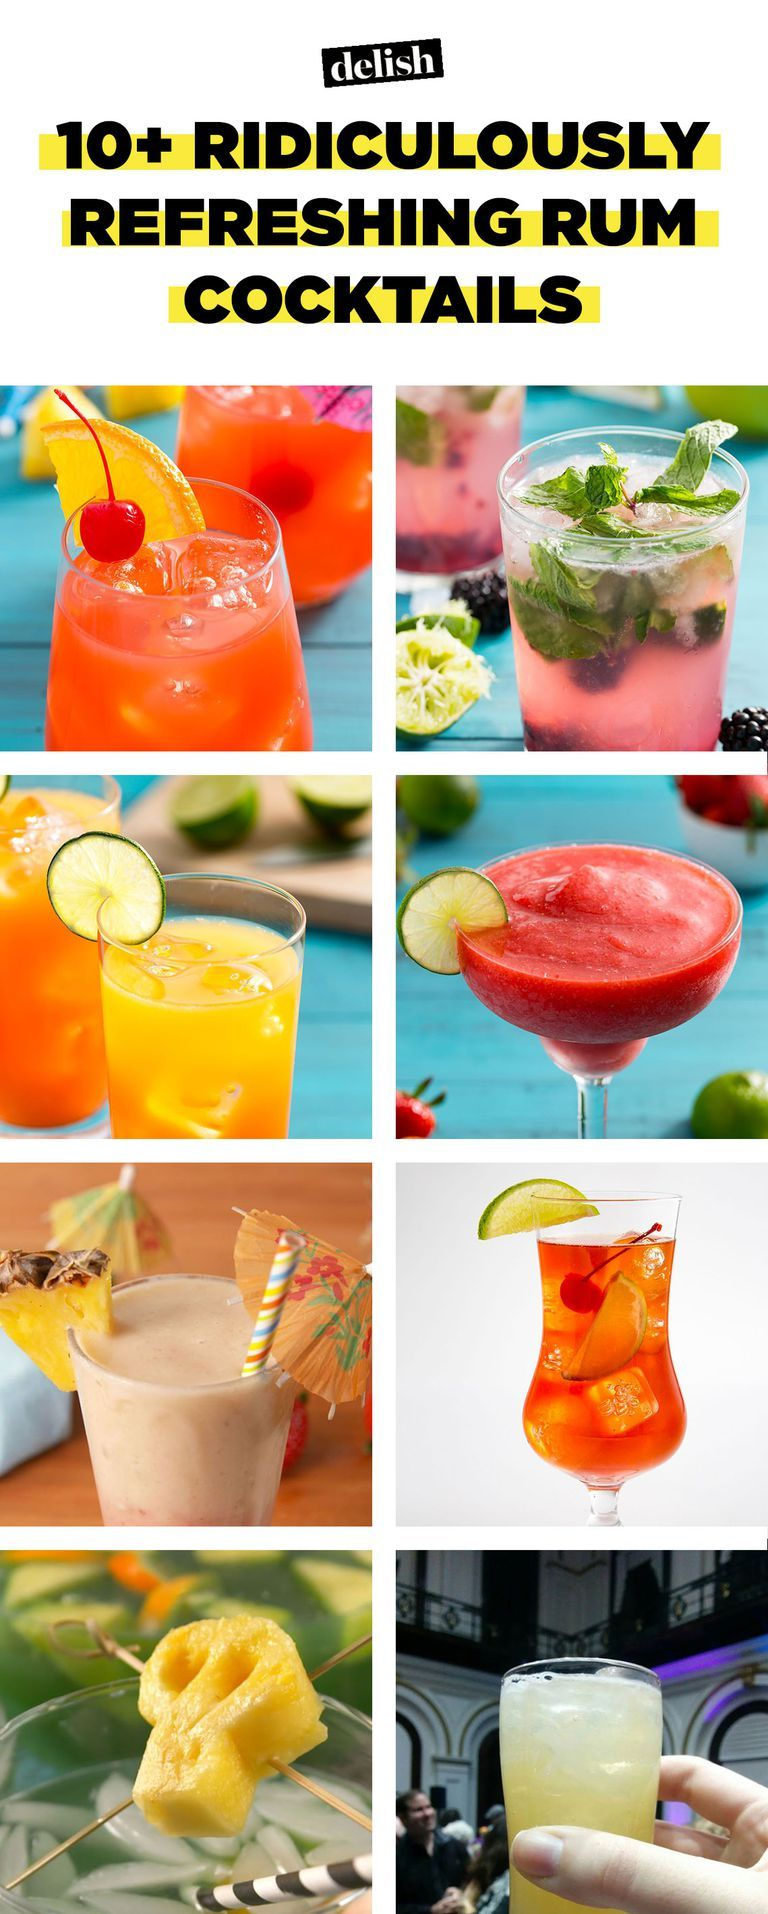 13 ridiculously refreshing rum cocktails you'll be drinking all